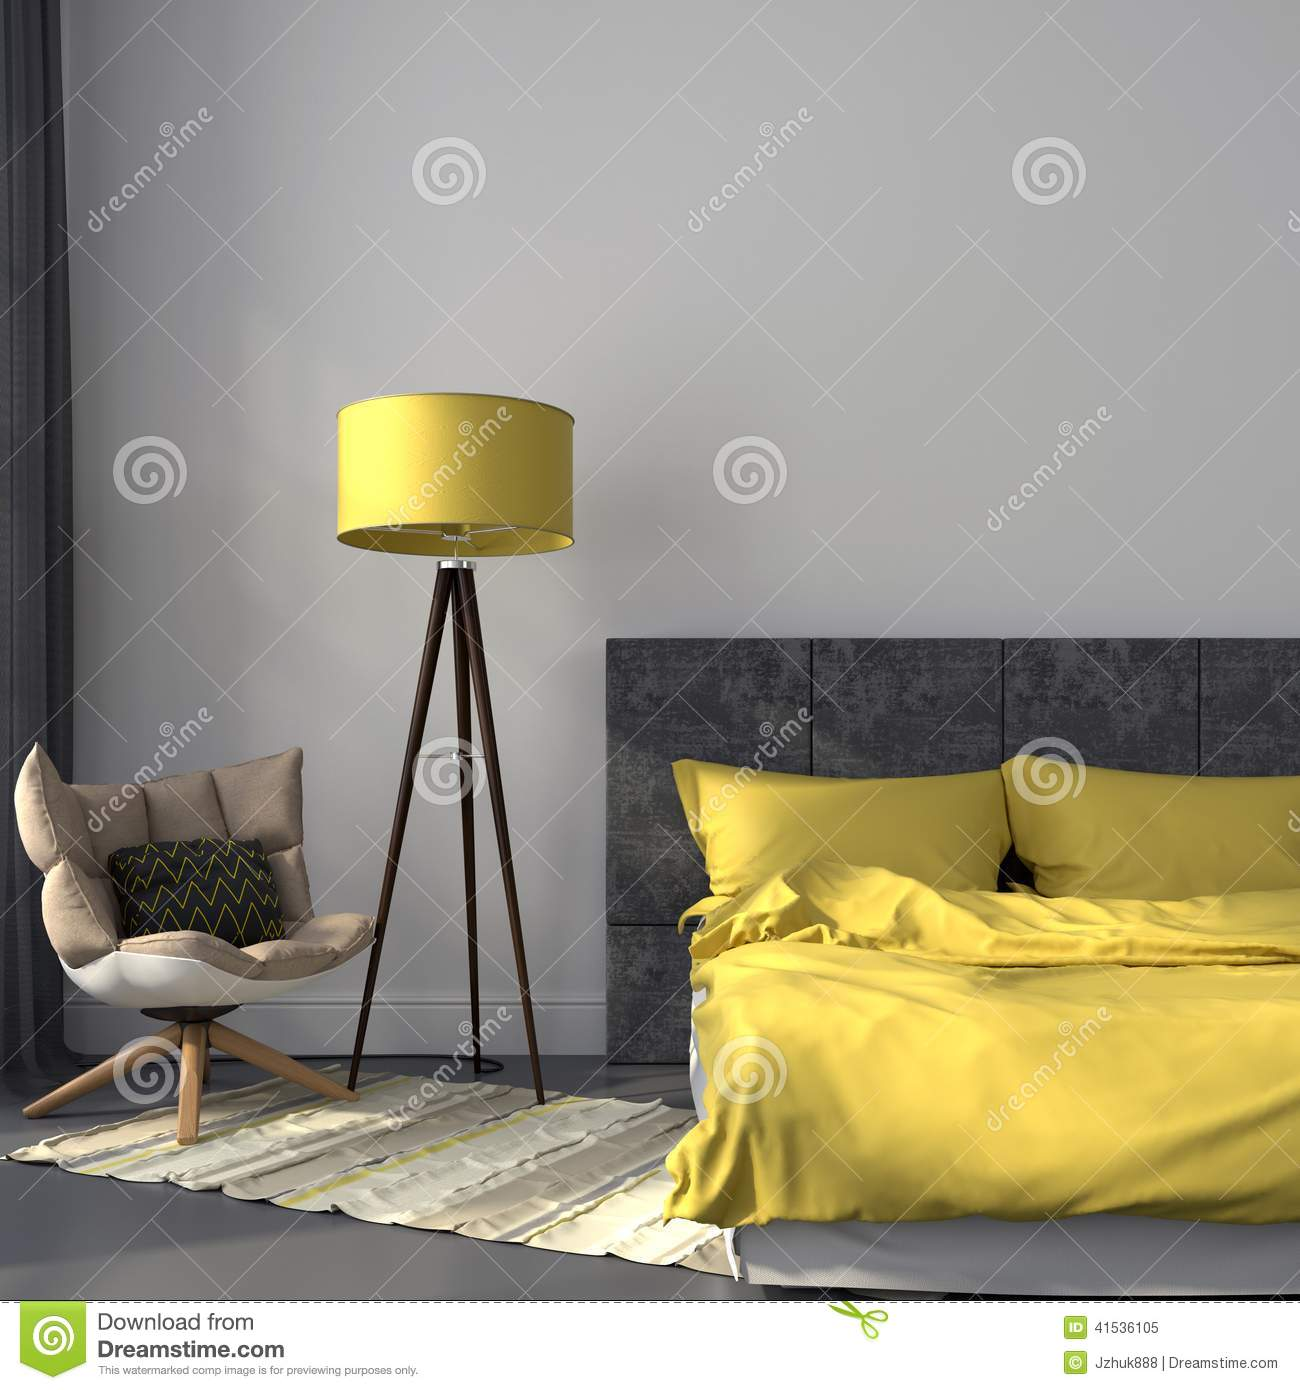 Gray Bedroom And Yellow Decor Stock Image  Image of